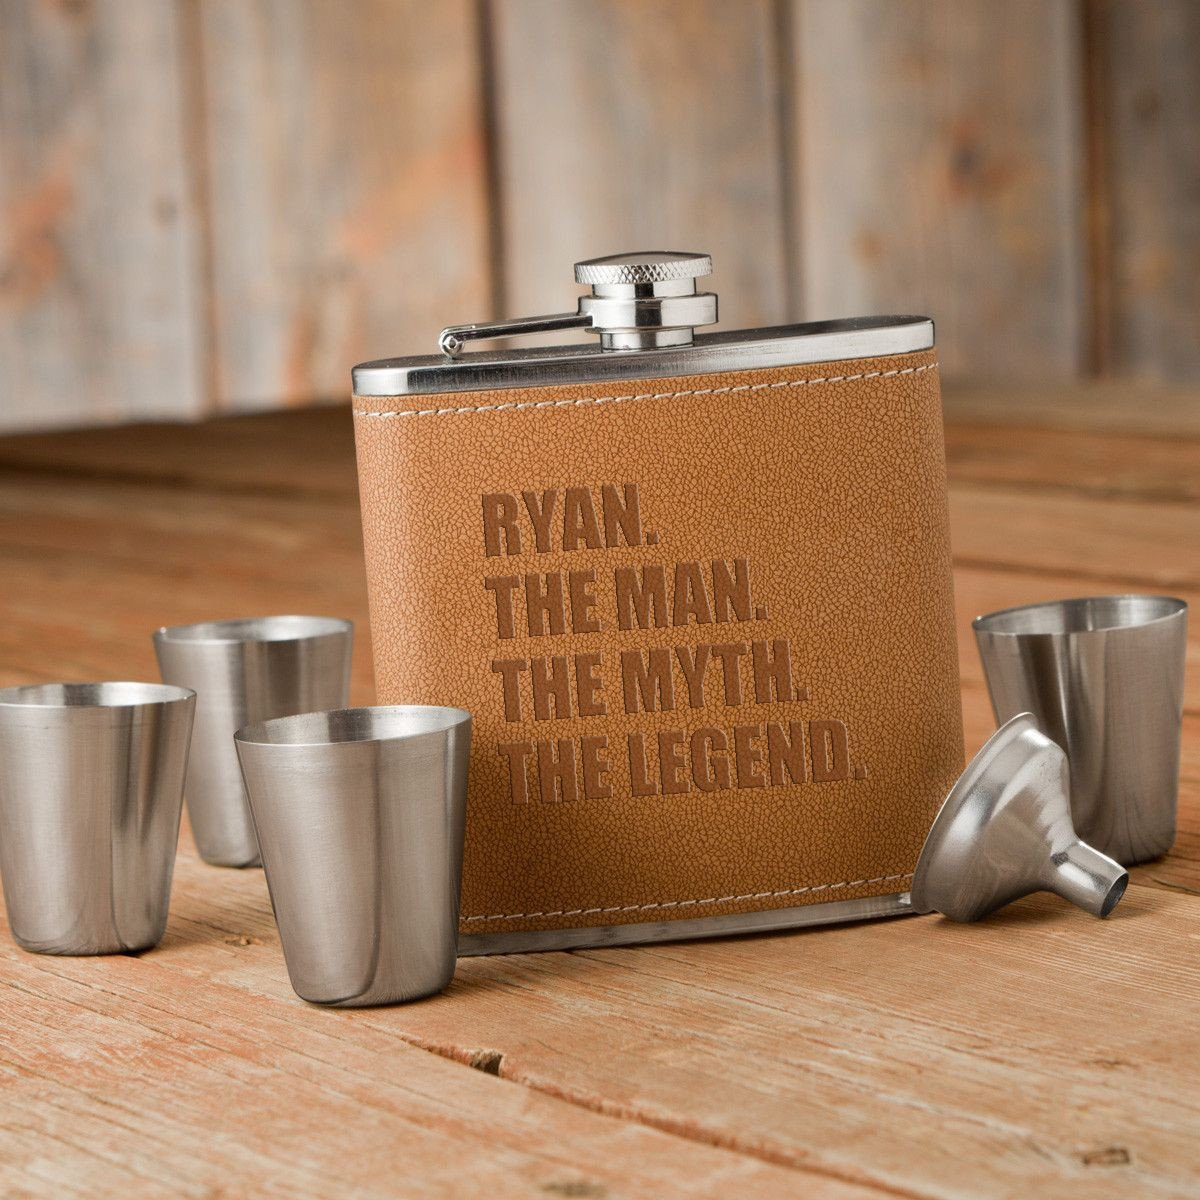 The-Man-The-Myth-The-Legend-Tan-Hide-Stitched-Flask-and-Shot-Glass-Set